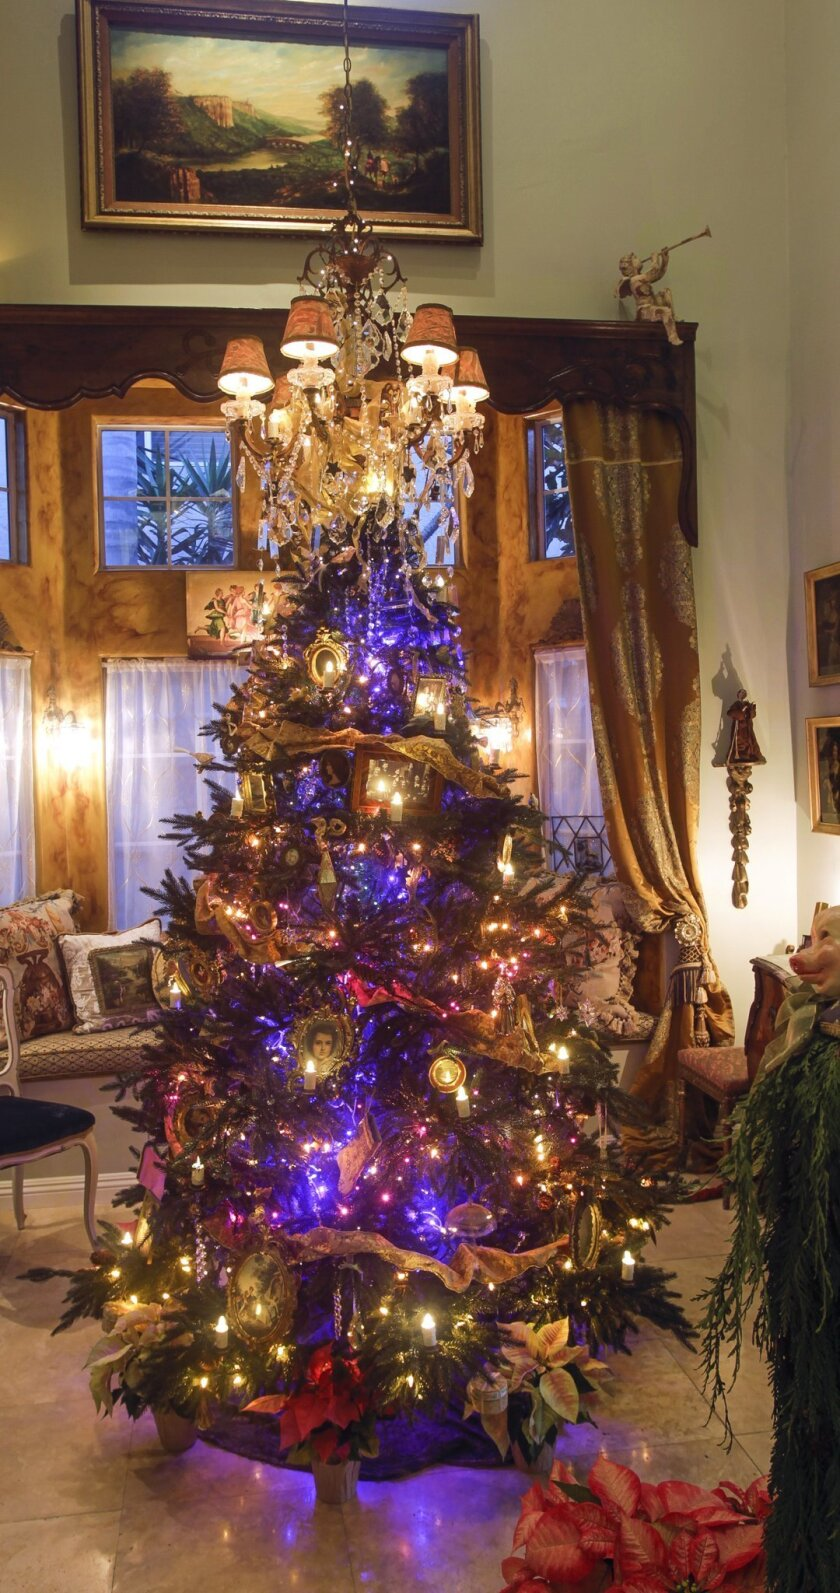 Jennifer Chapman's Christmas tree is decorated with antique bird figurines and ornaments with flocking once belonging to her late mother and grandmother. There also are newer decorations made by her children when they were young.